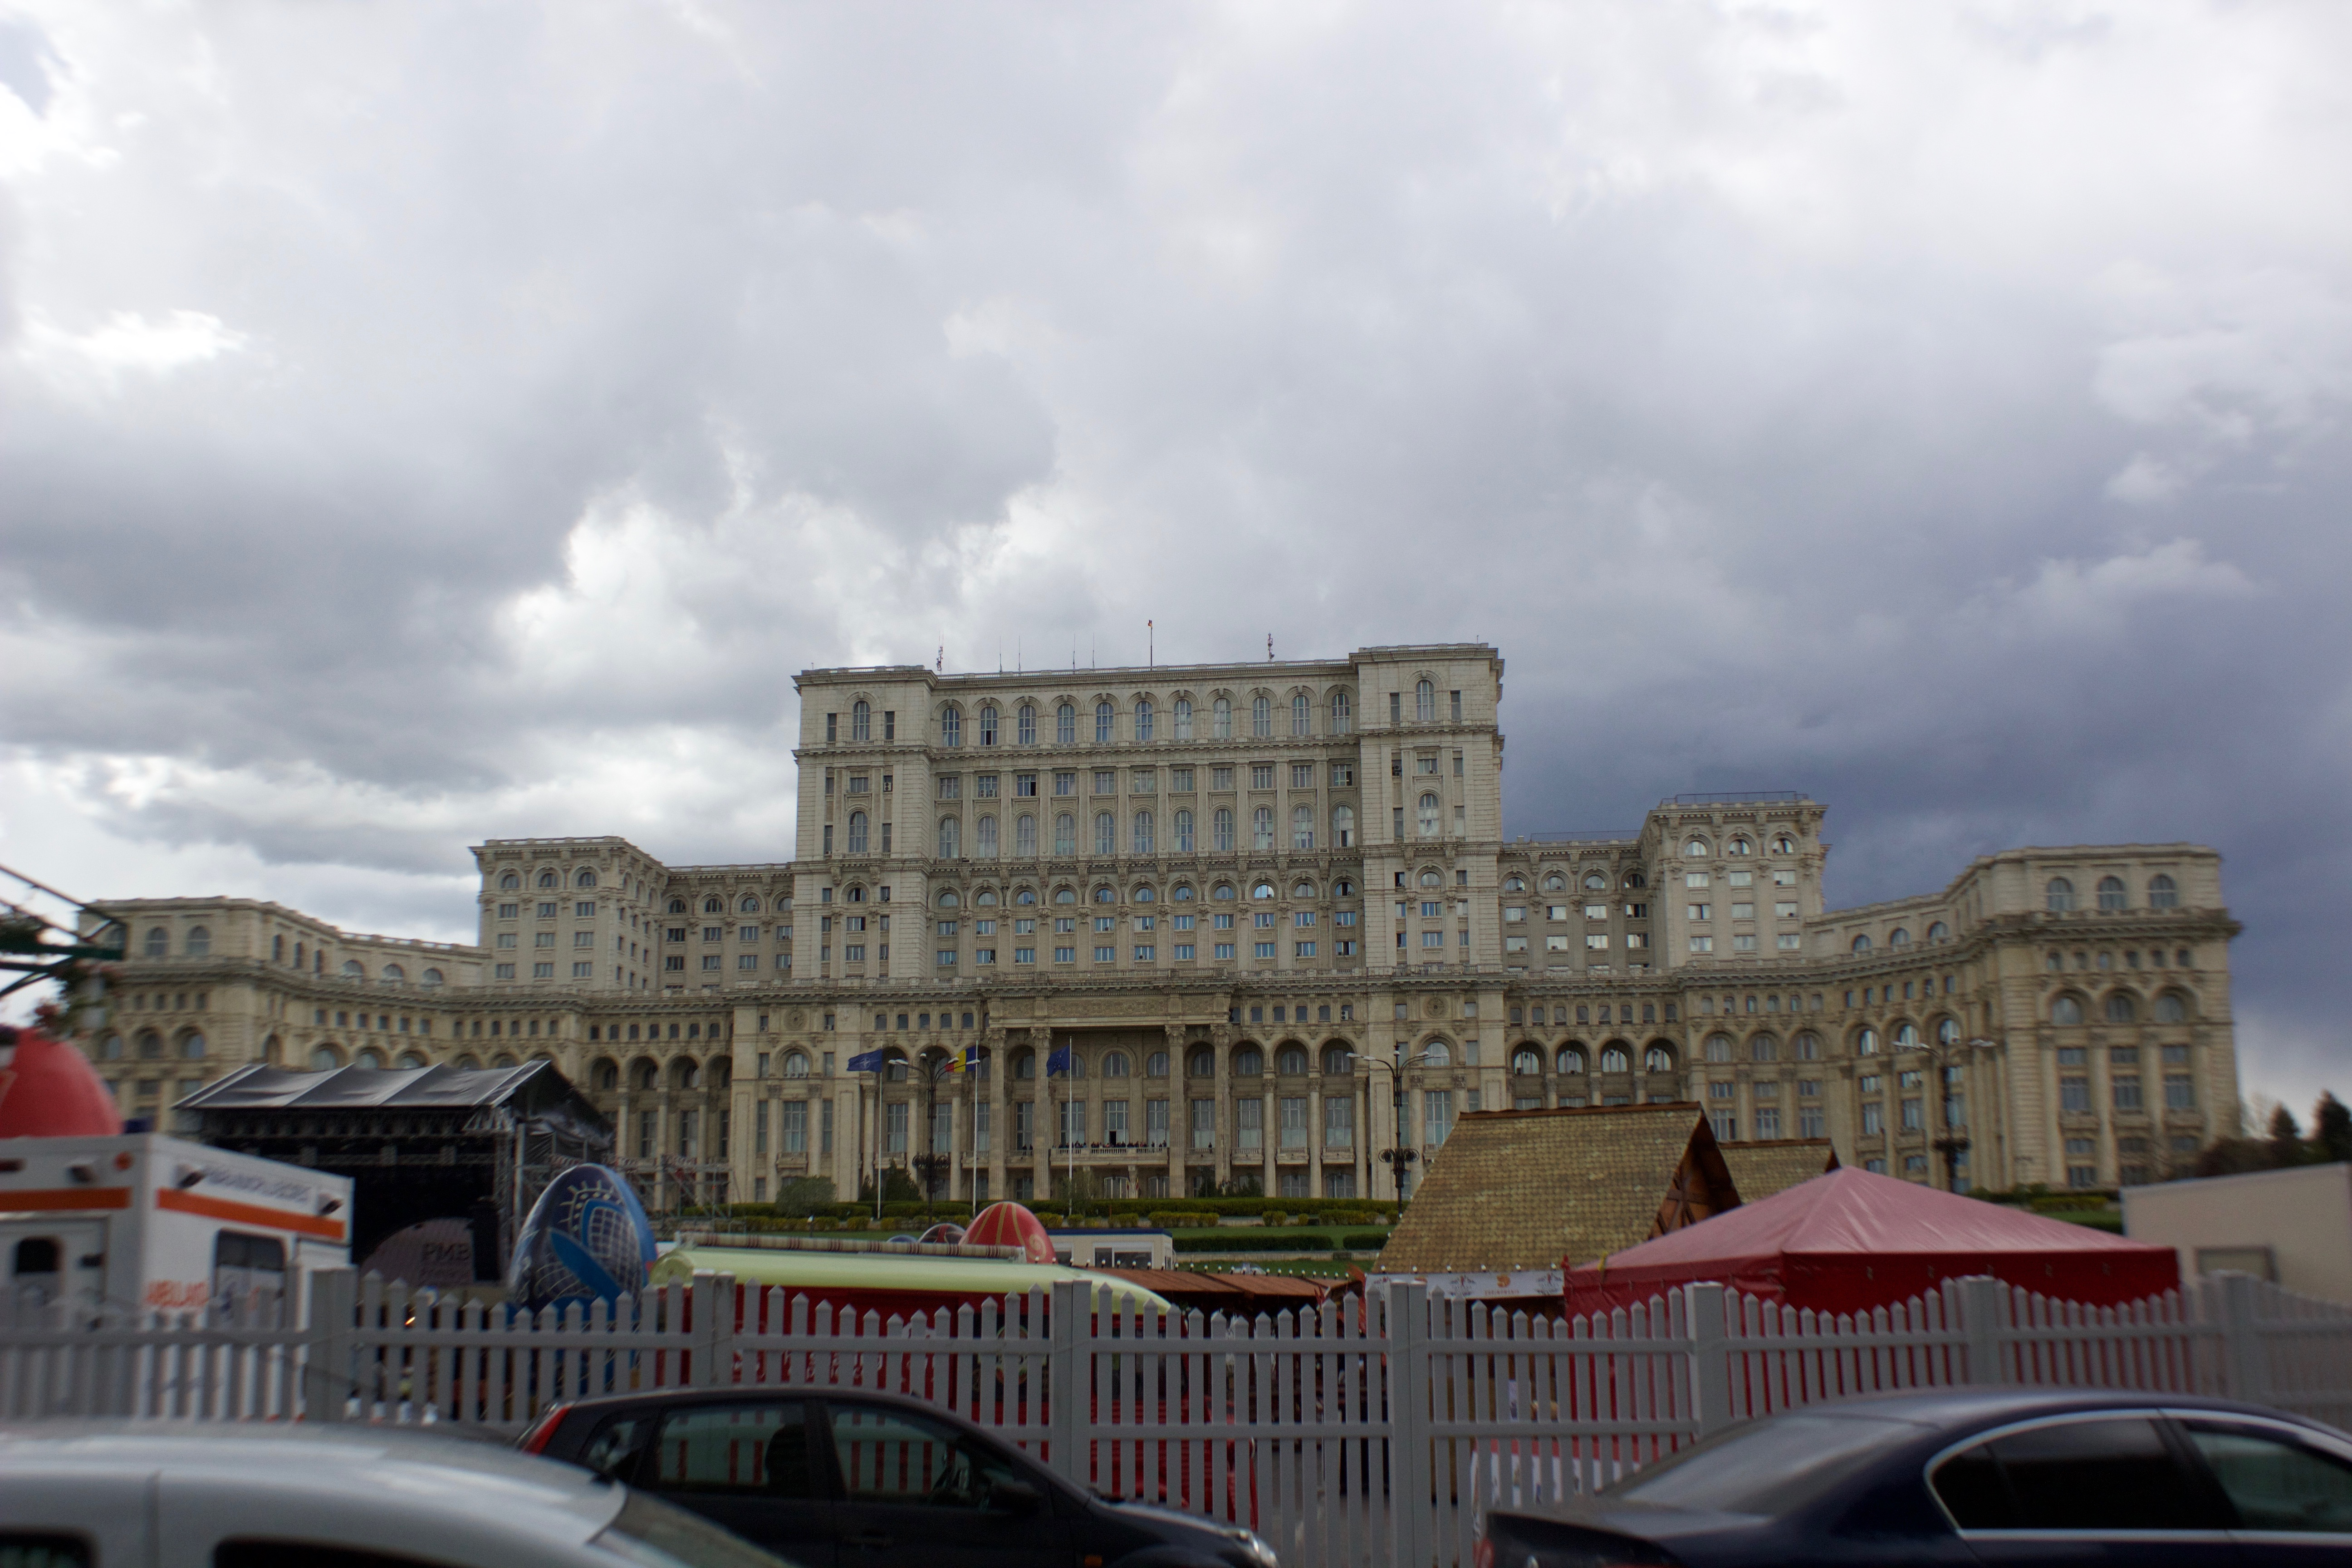 The huge palace of Bucharest